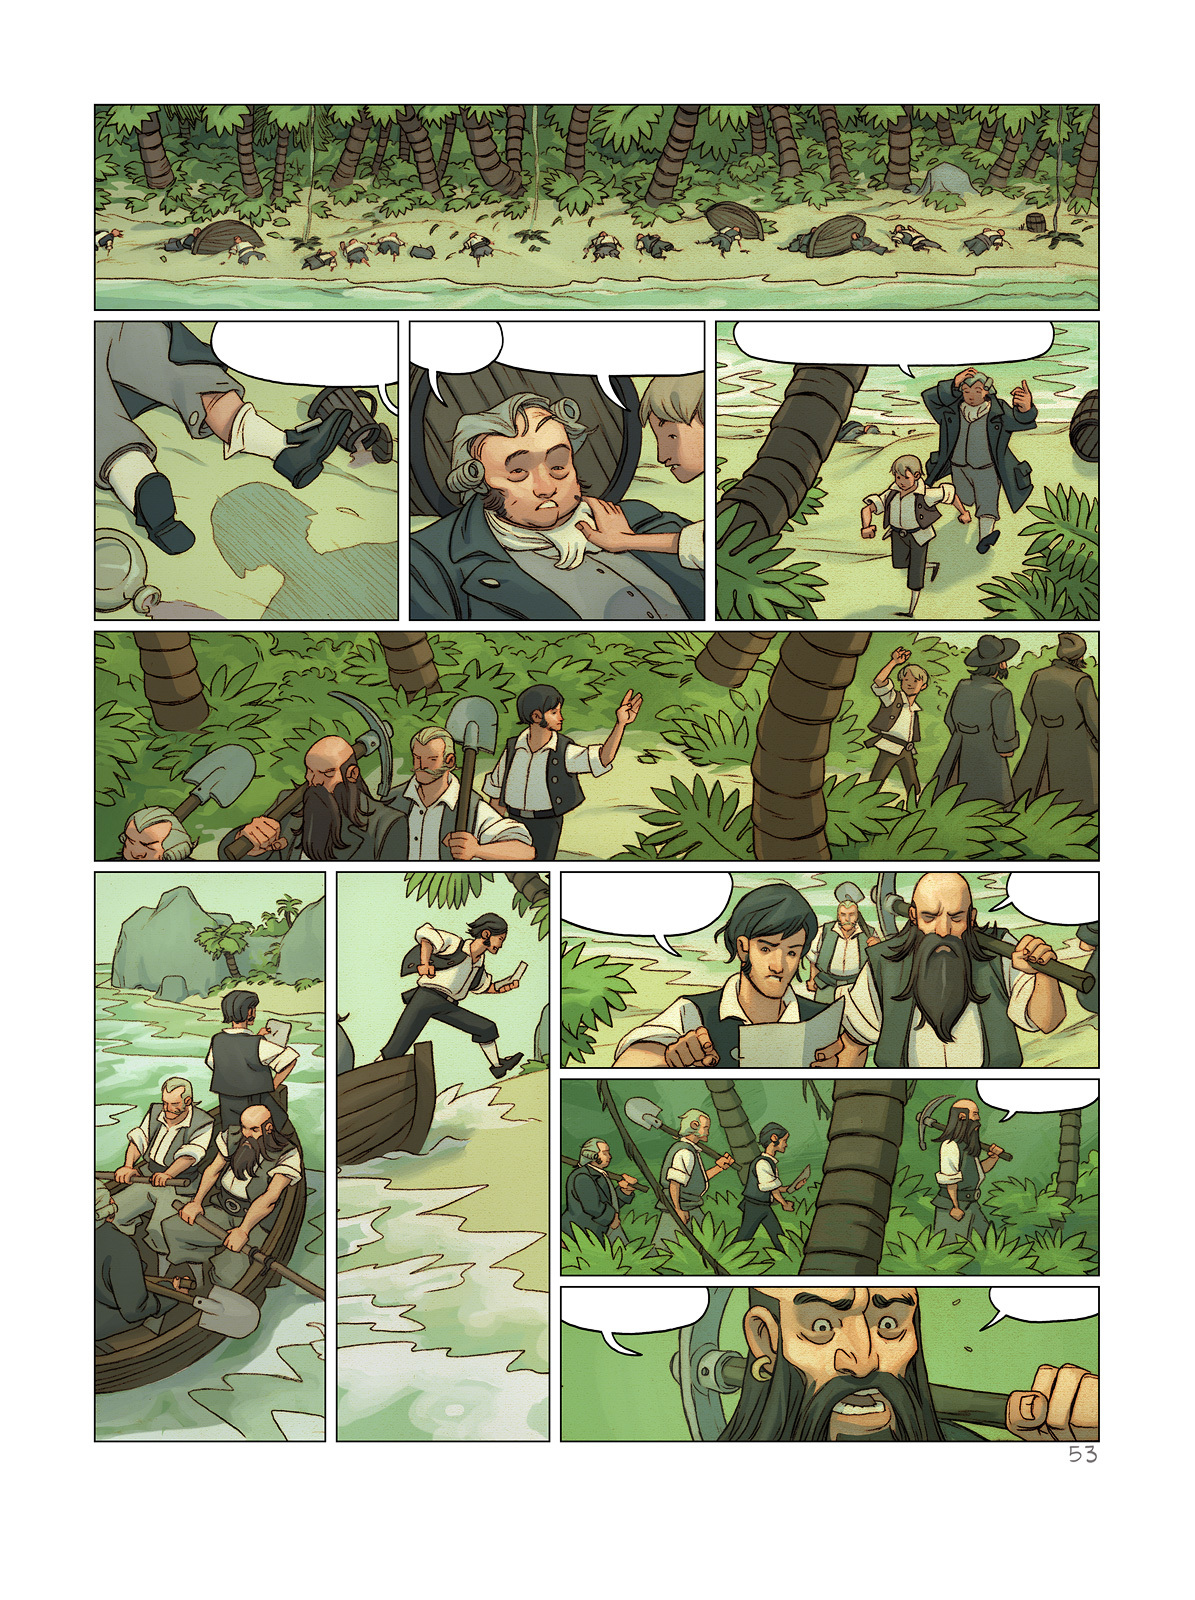 7pirates_page-53-color.jpg